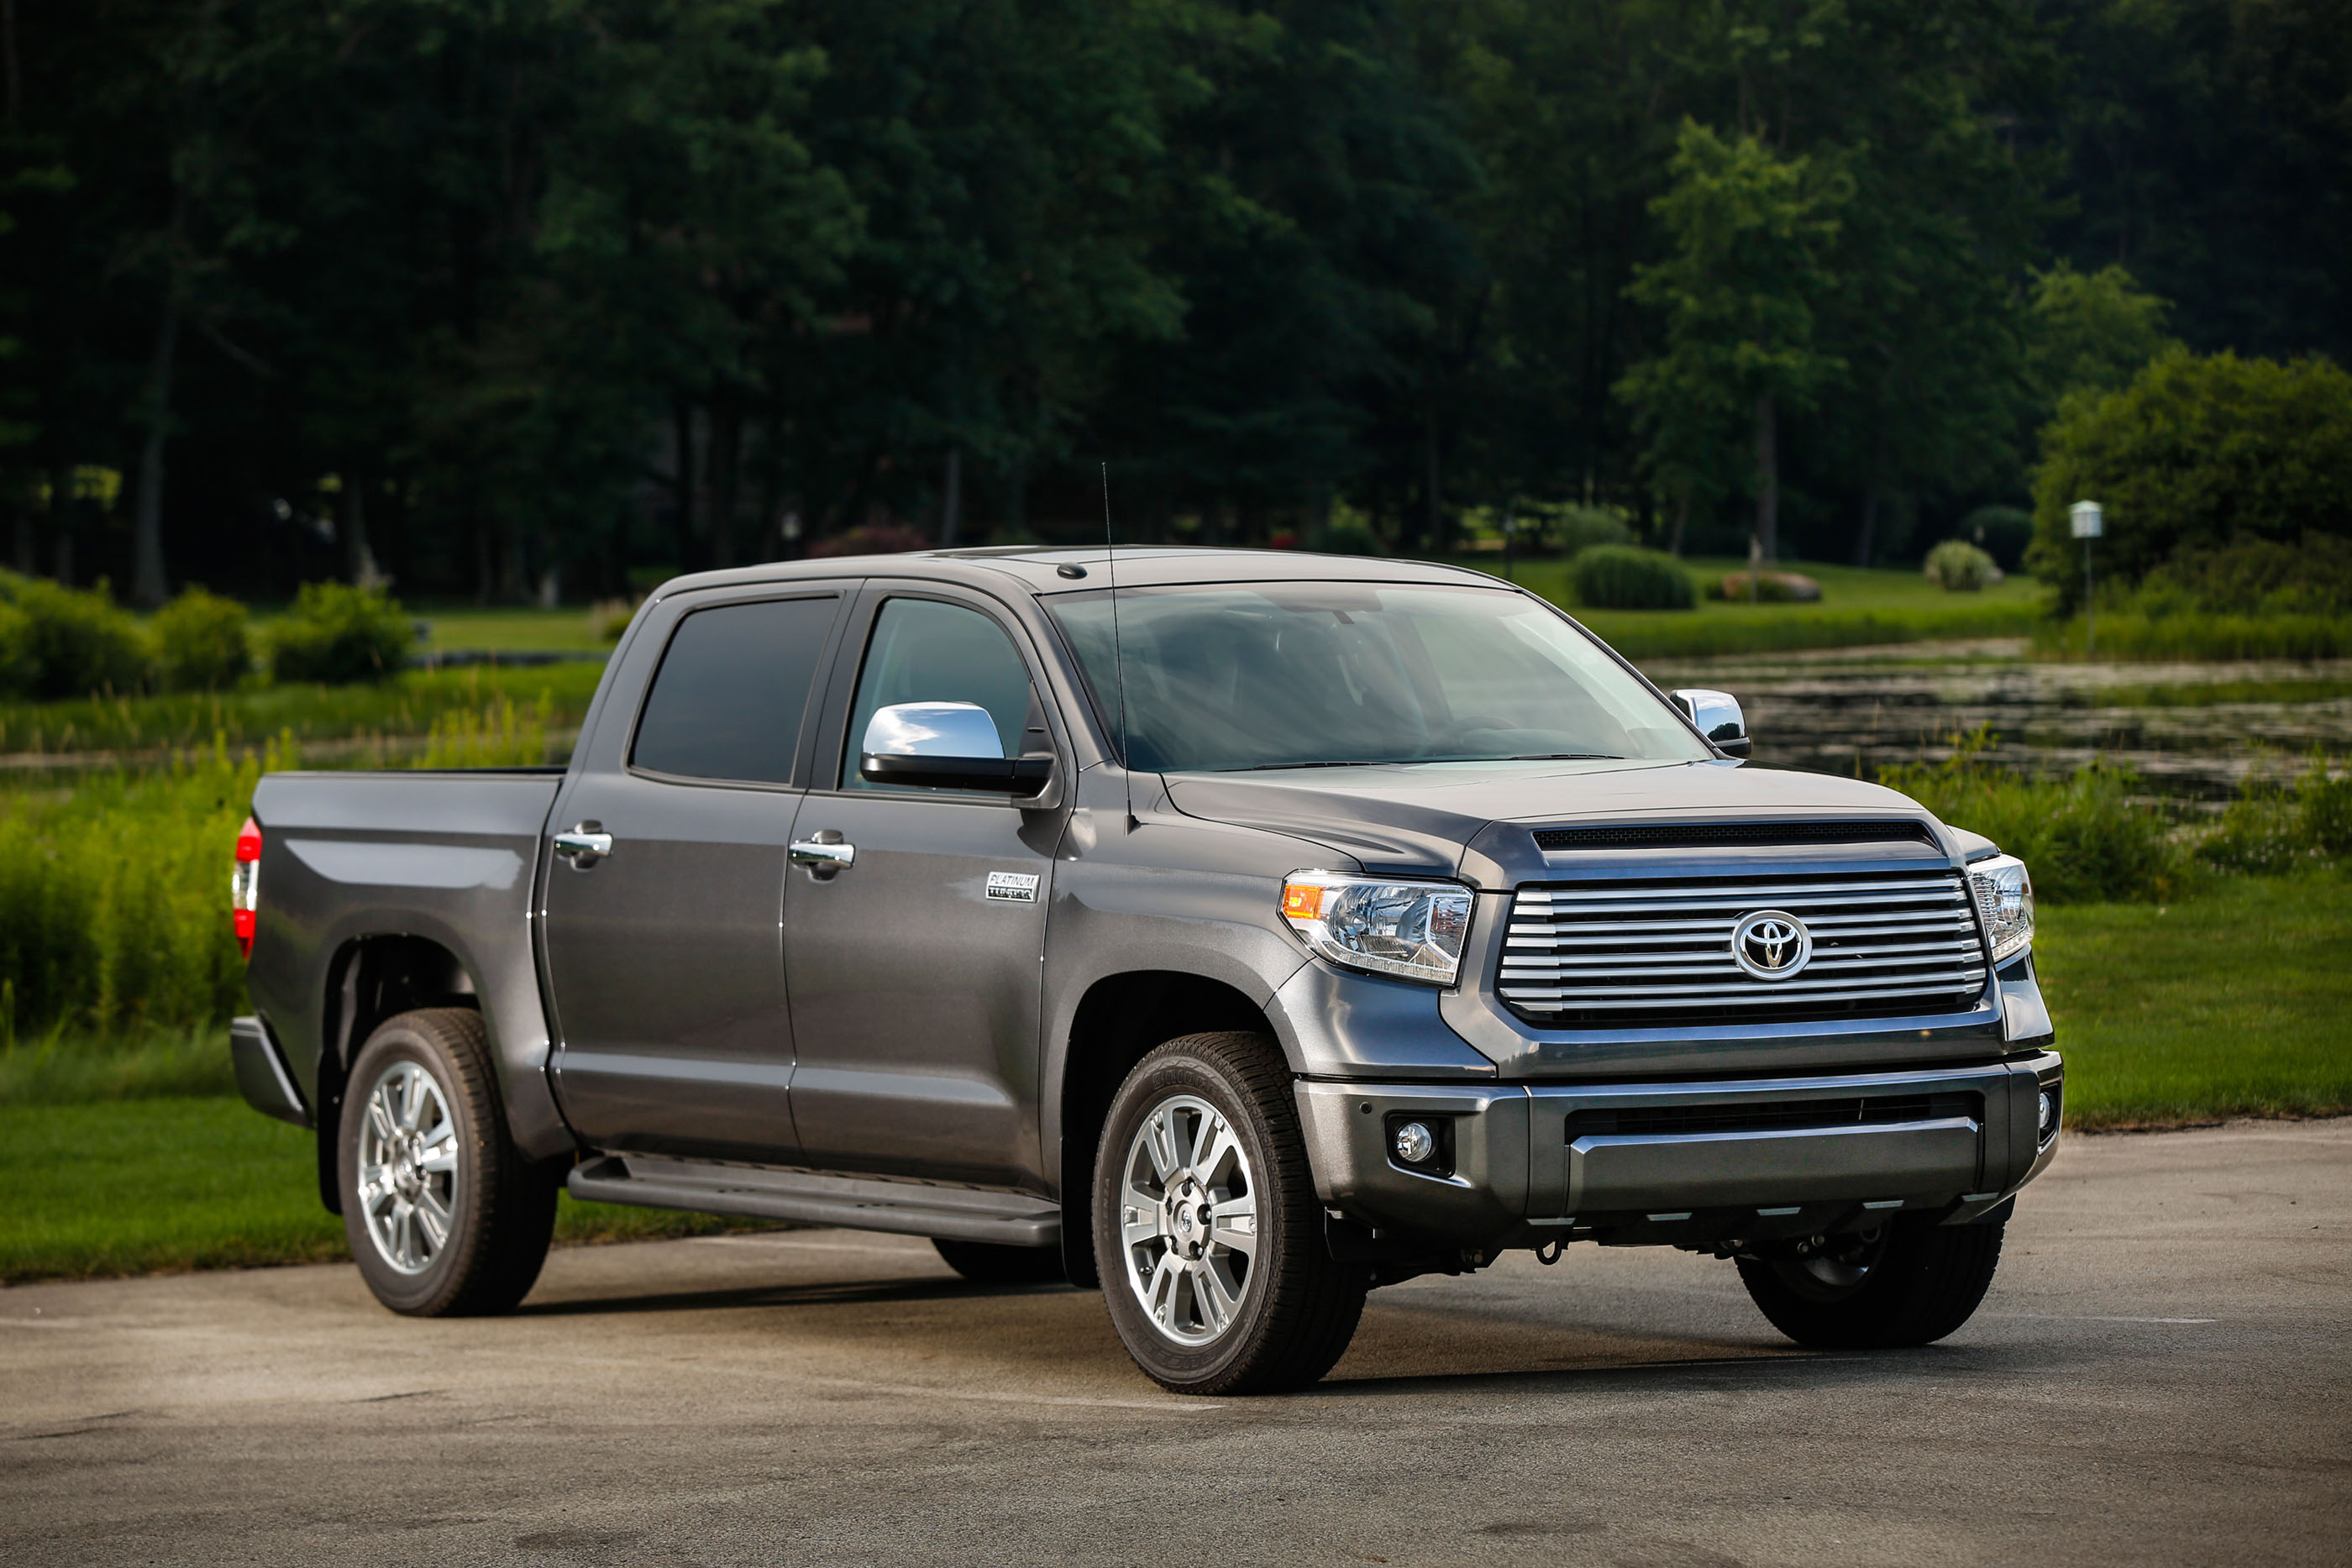 new and used toyota tundra prices photos reviews specs the car connection. Black Bedroom Furniture Sets. Home Design Ideas